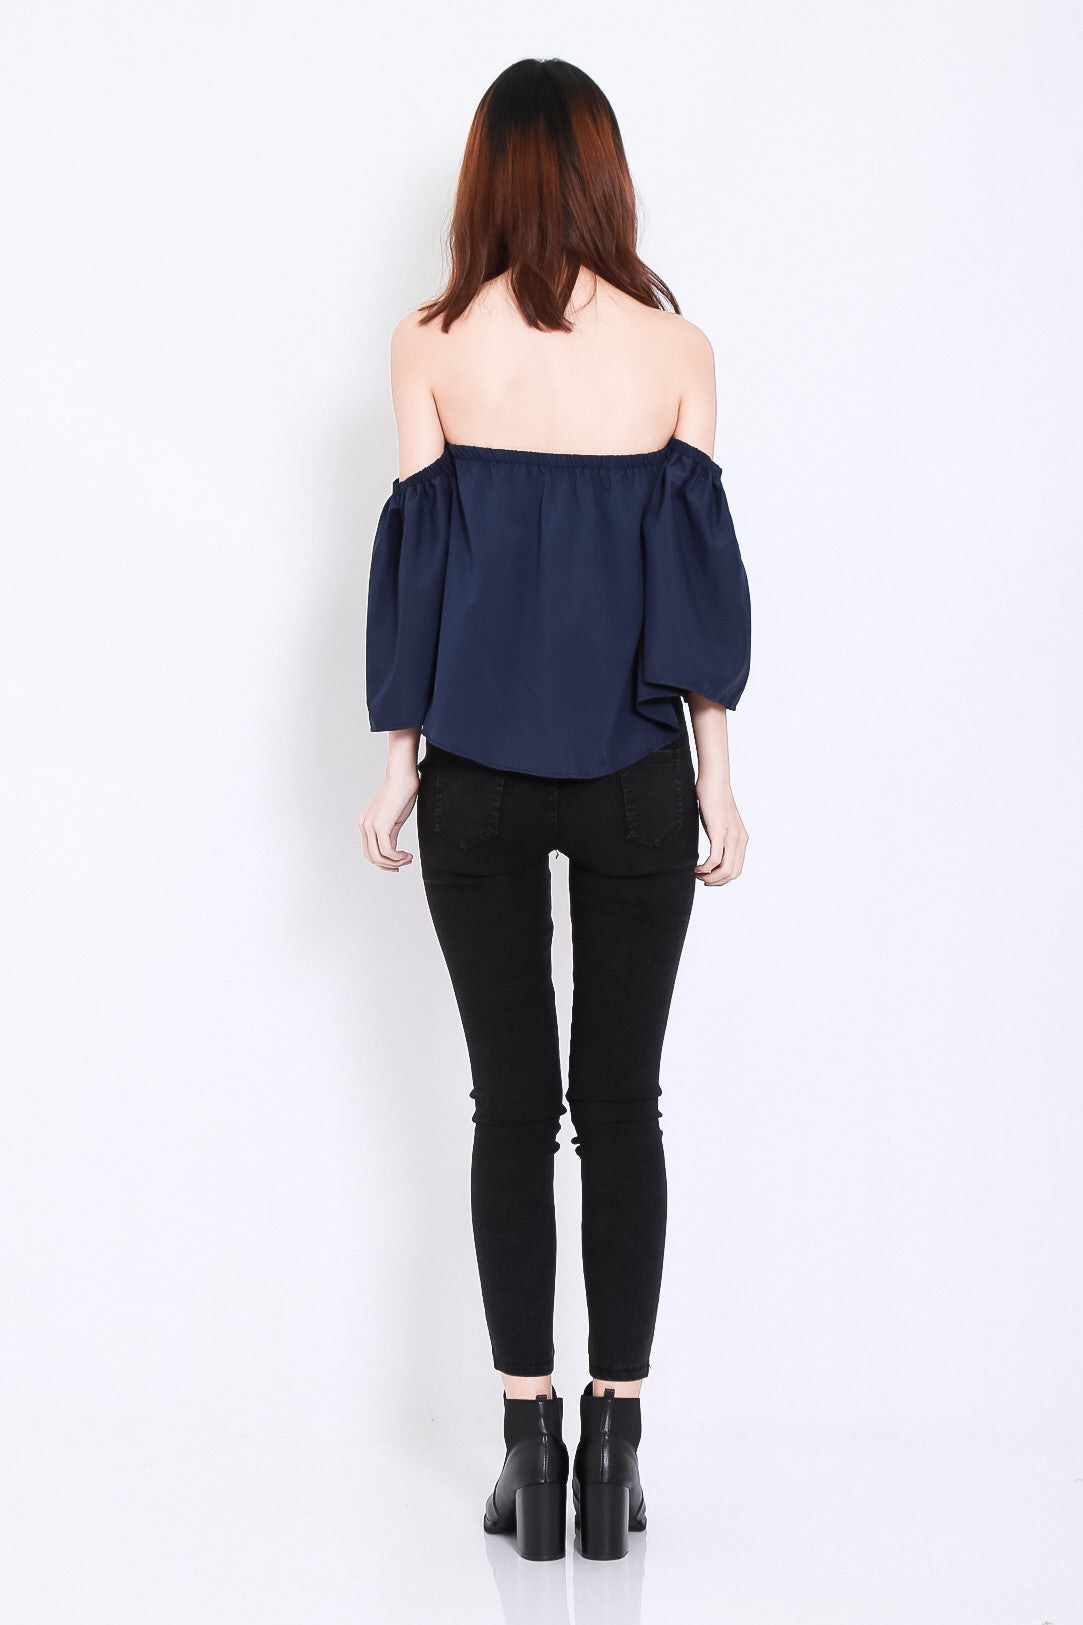 MEANT TO BE OFF SHOULDER TOP IN NAVY - TOPAZETTE